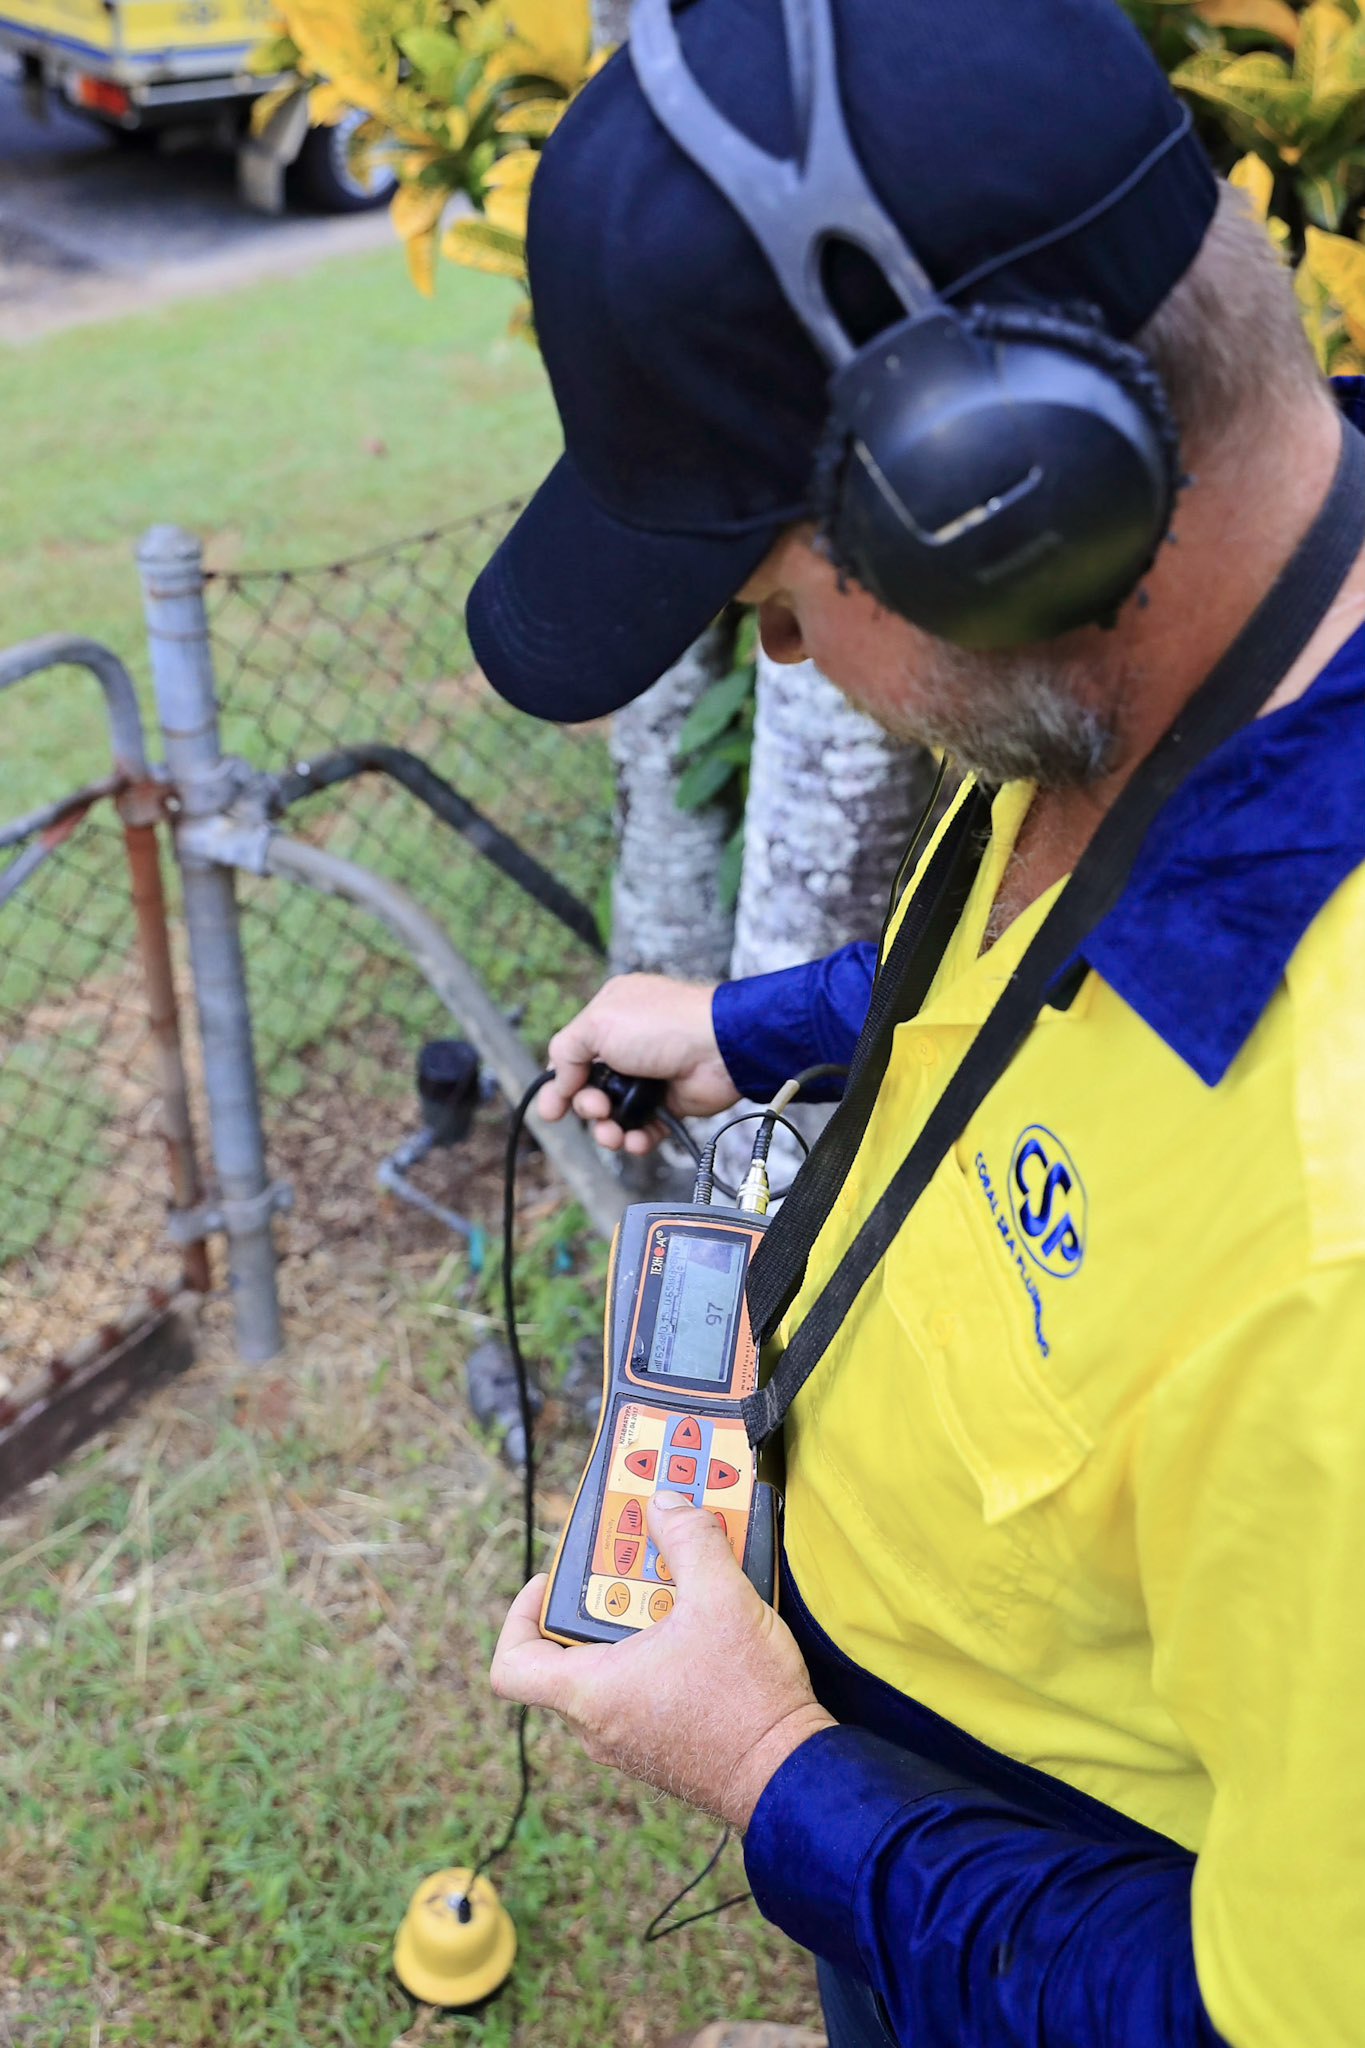 Leak Detection in Cairns